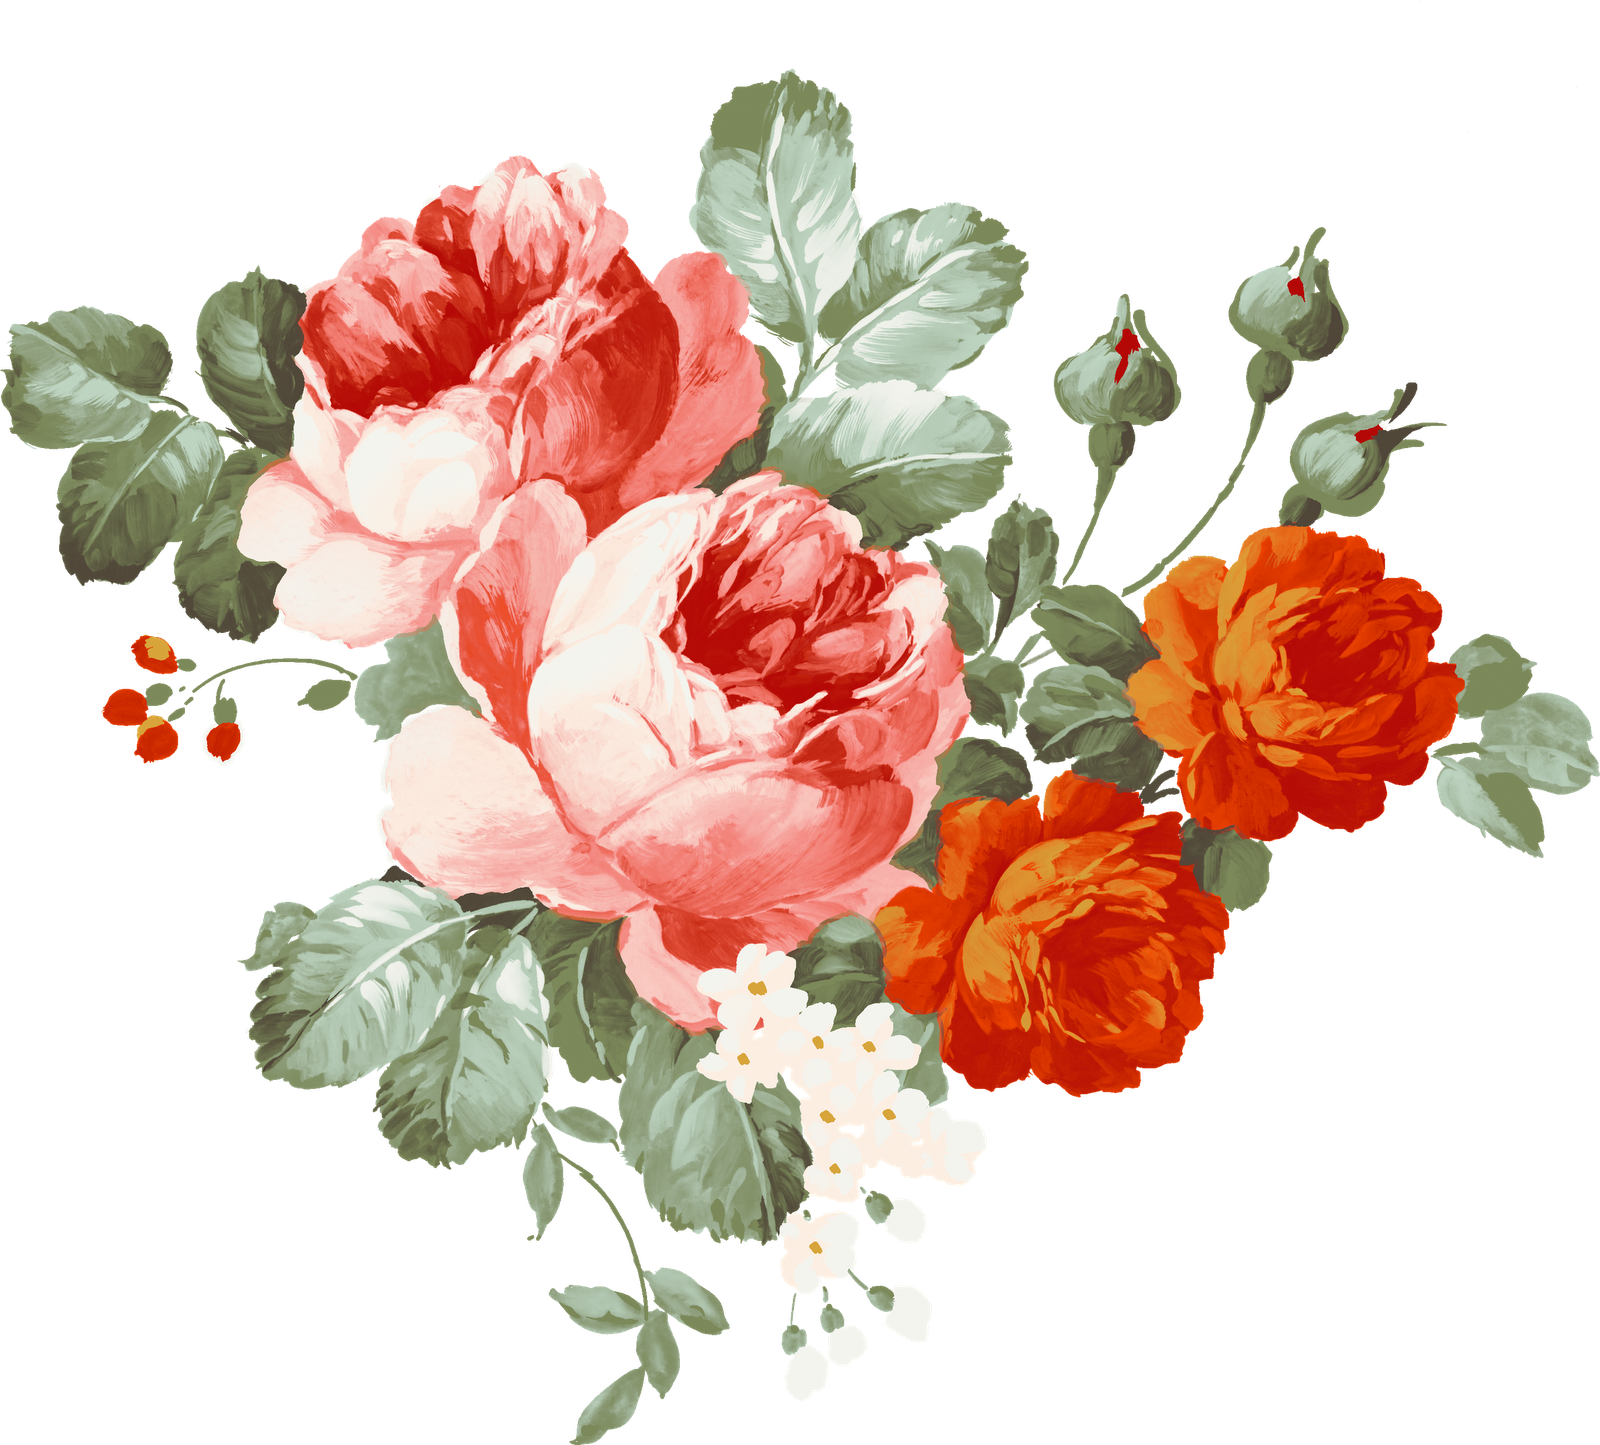 Watercolor Flowers Png Vector Psd And Clipart With: Image Result For Hand Painting Flowers